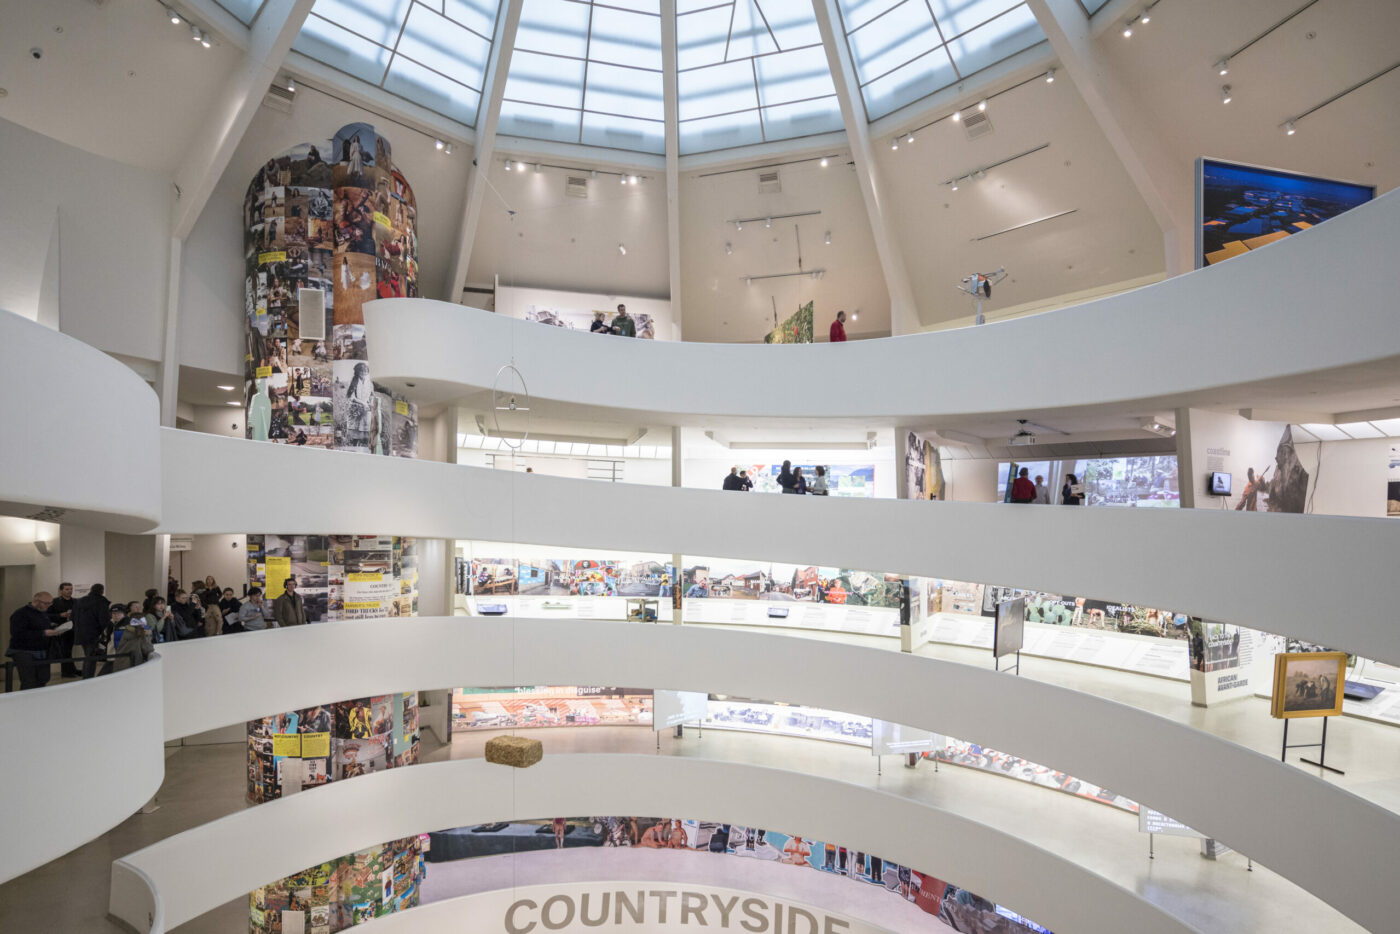 The Countryside, an Awareness Campaign: interview with Rem Koolhaas